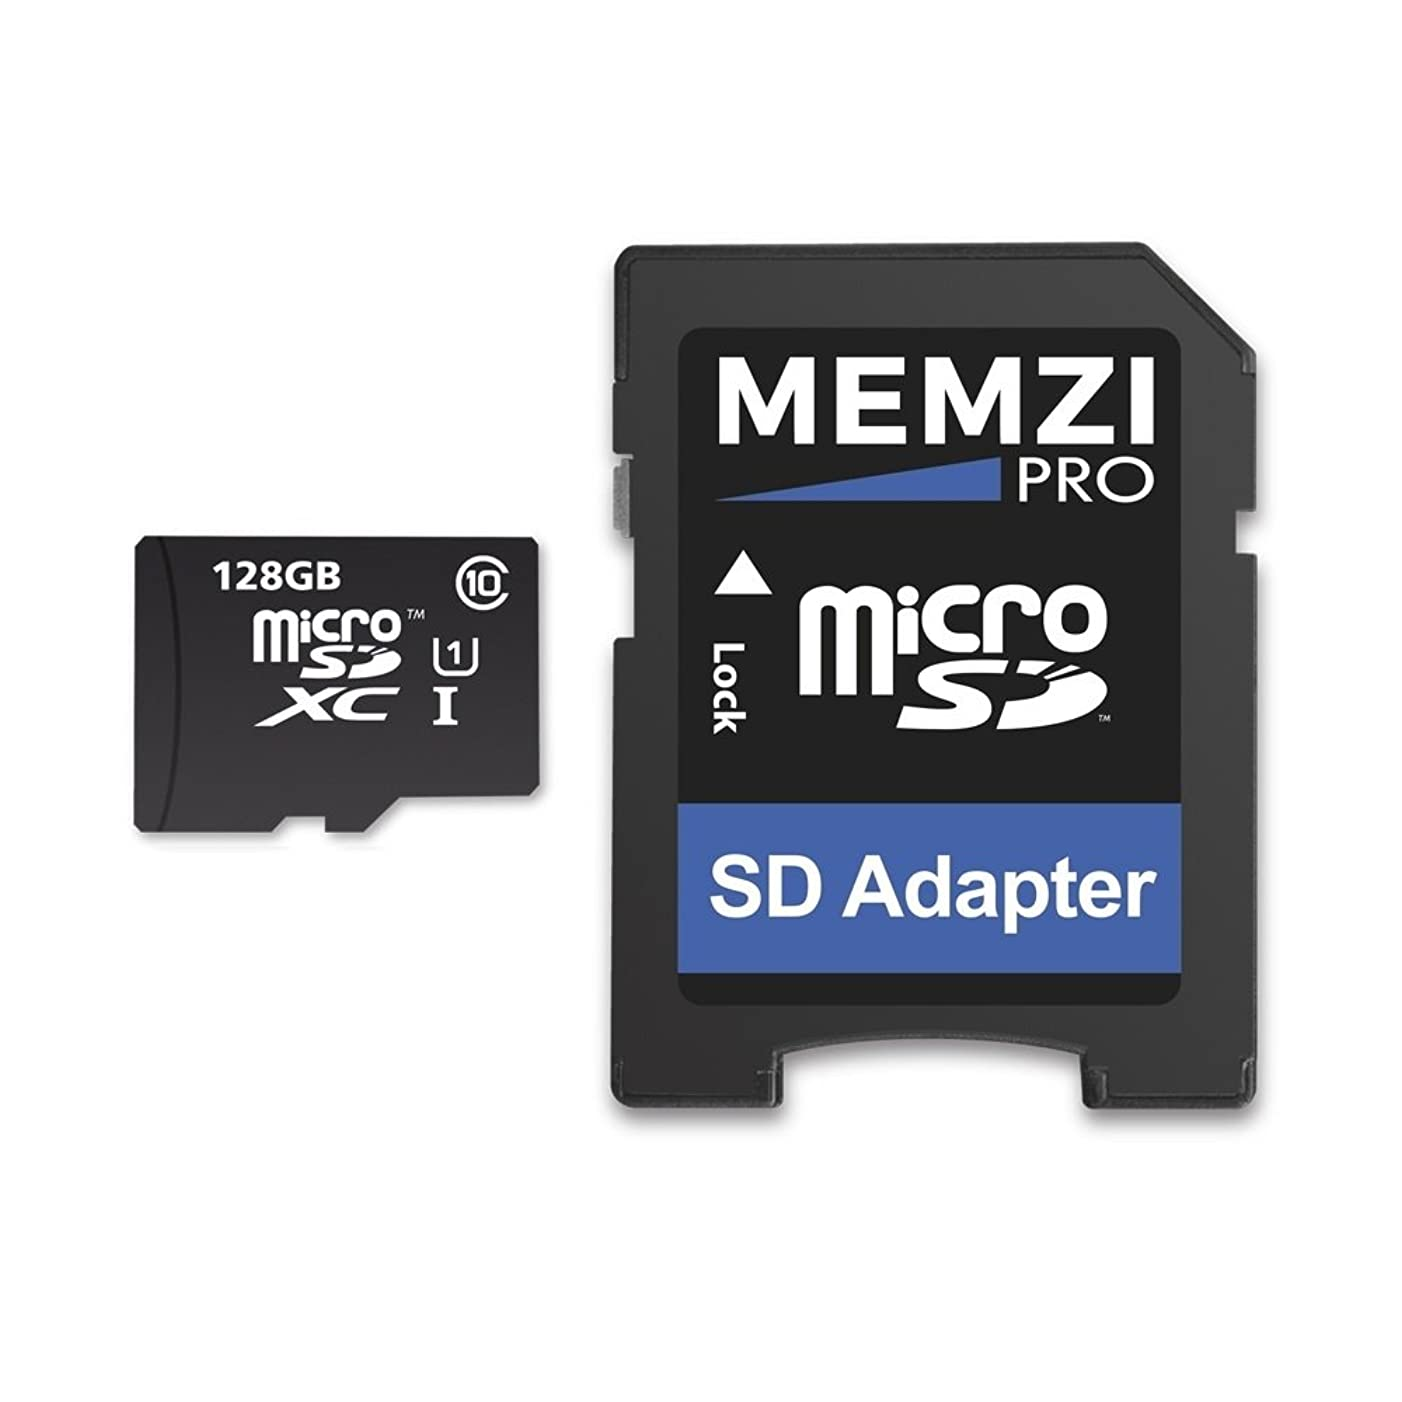 MEMZI PRO 128GB Class 10 80MB/s Micro SDXC Memory Card with SD Adapter for Nintendo Switch Console